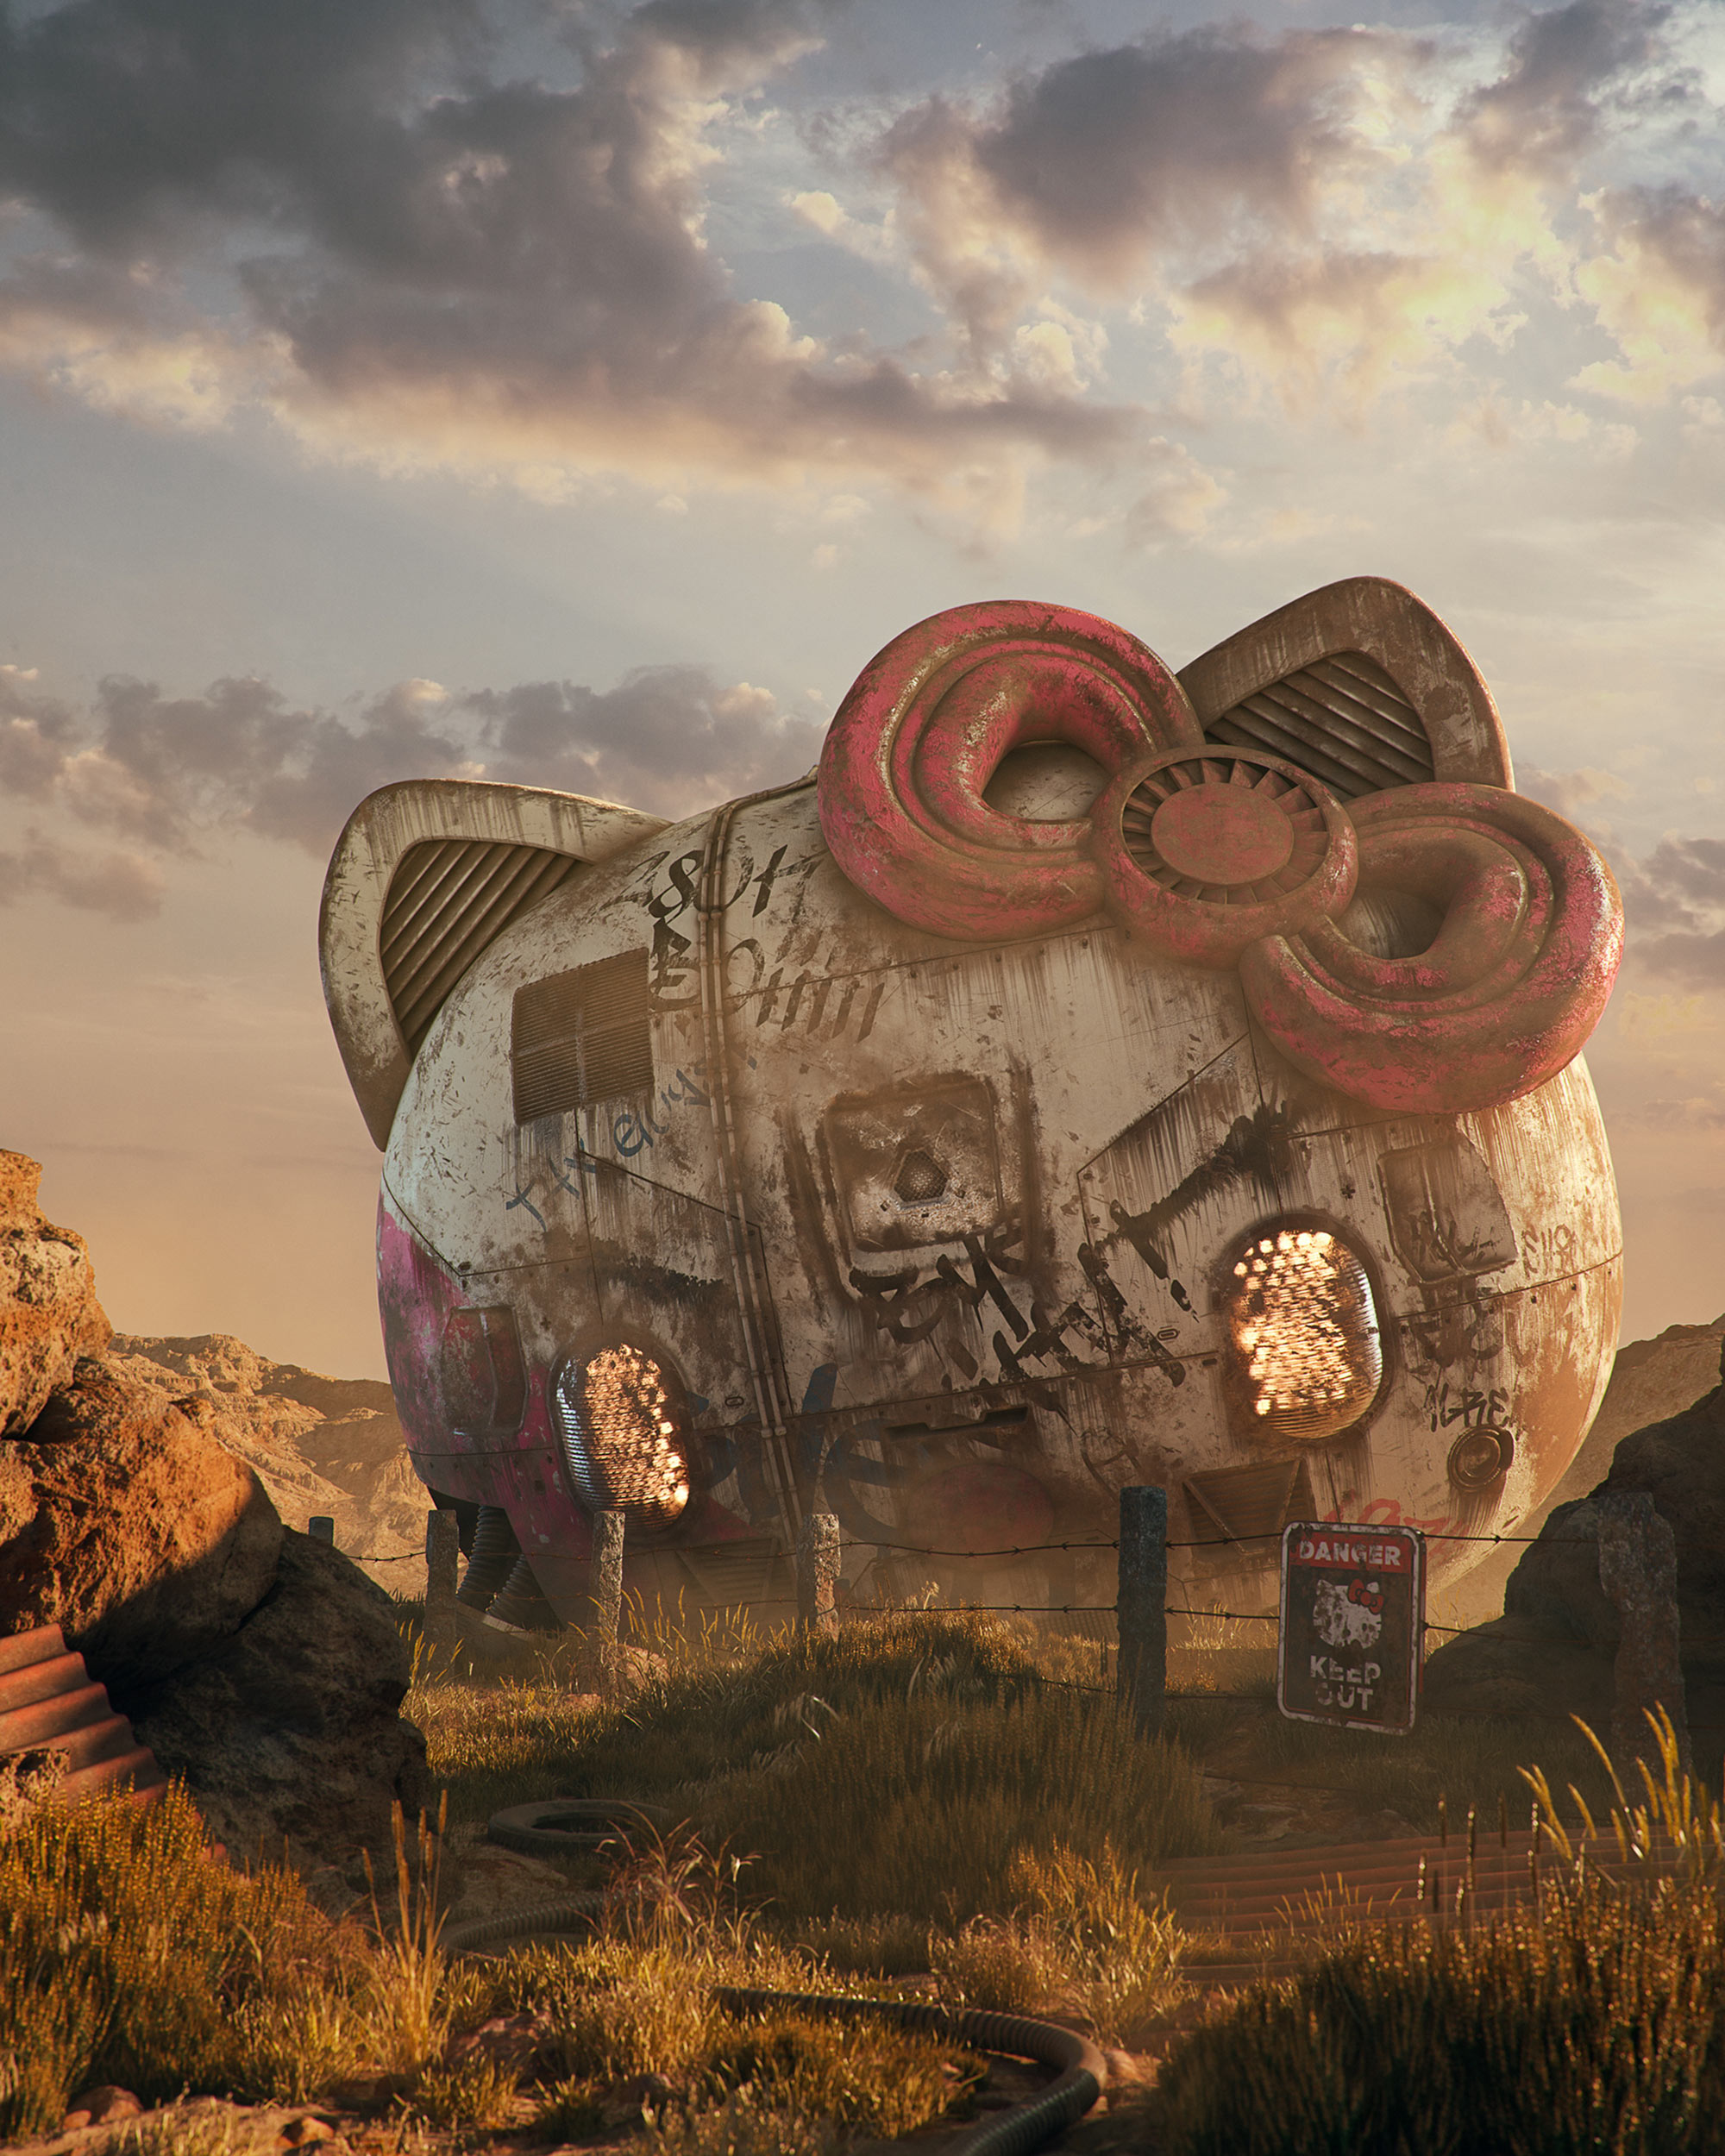 Filip Hodas - Pop culture dystopia, Hello Kitty